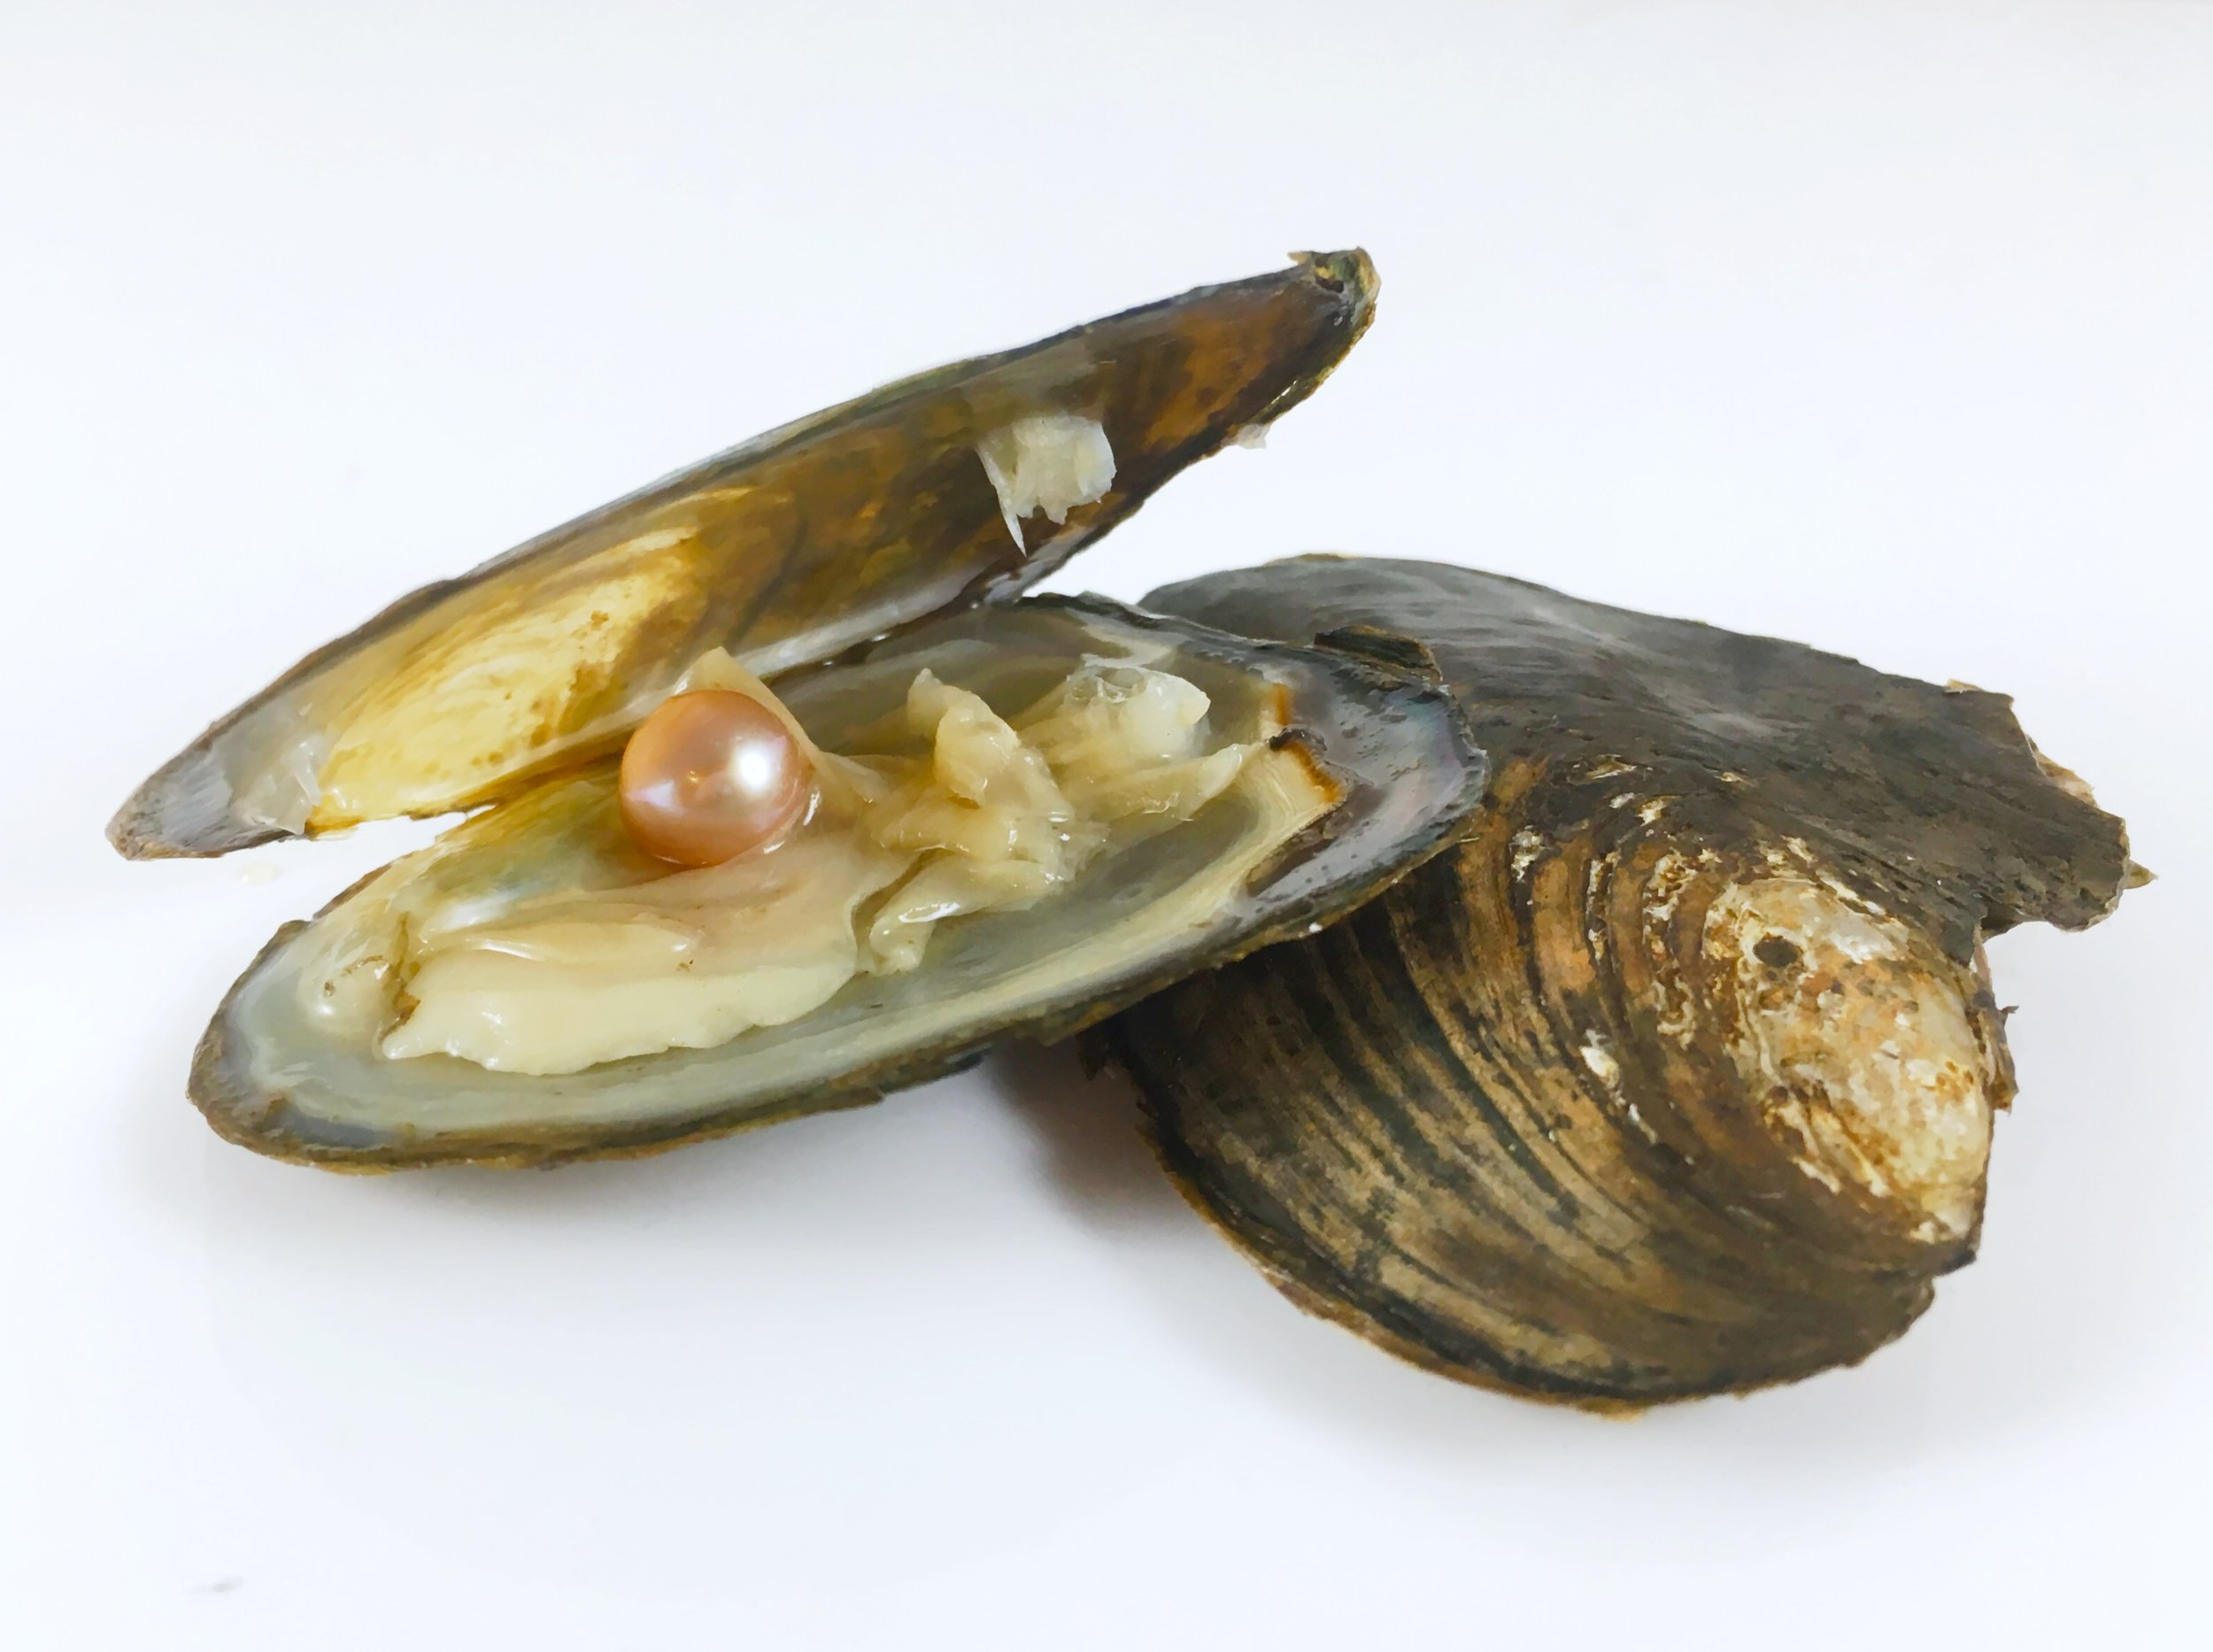 Cultured Pearl Oyster Openings and More... - Pearls, Charms, Keychains and More!